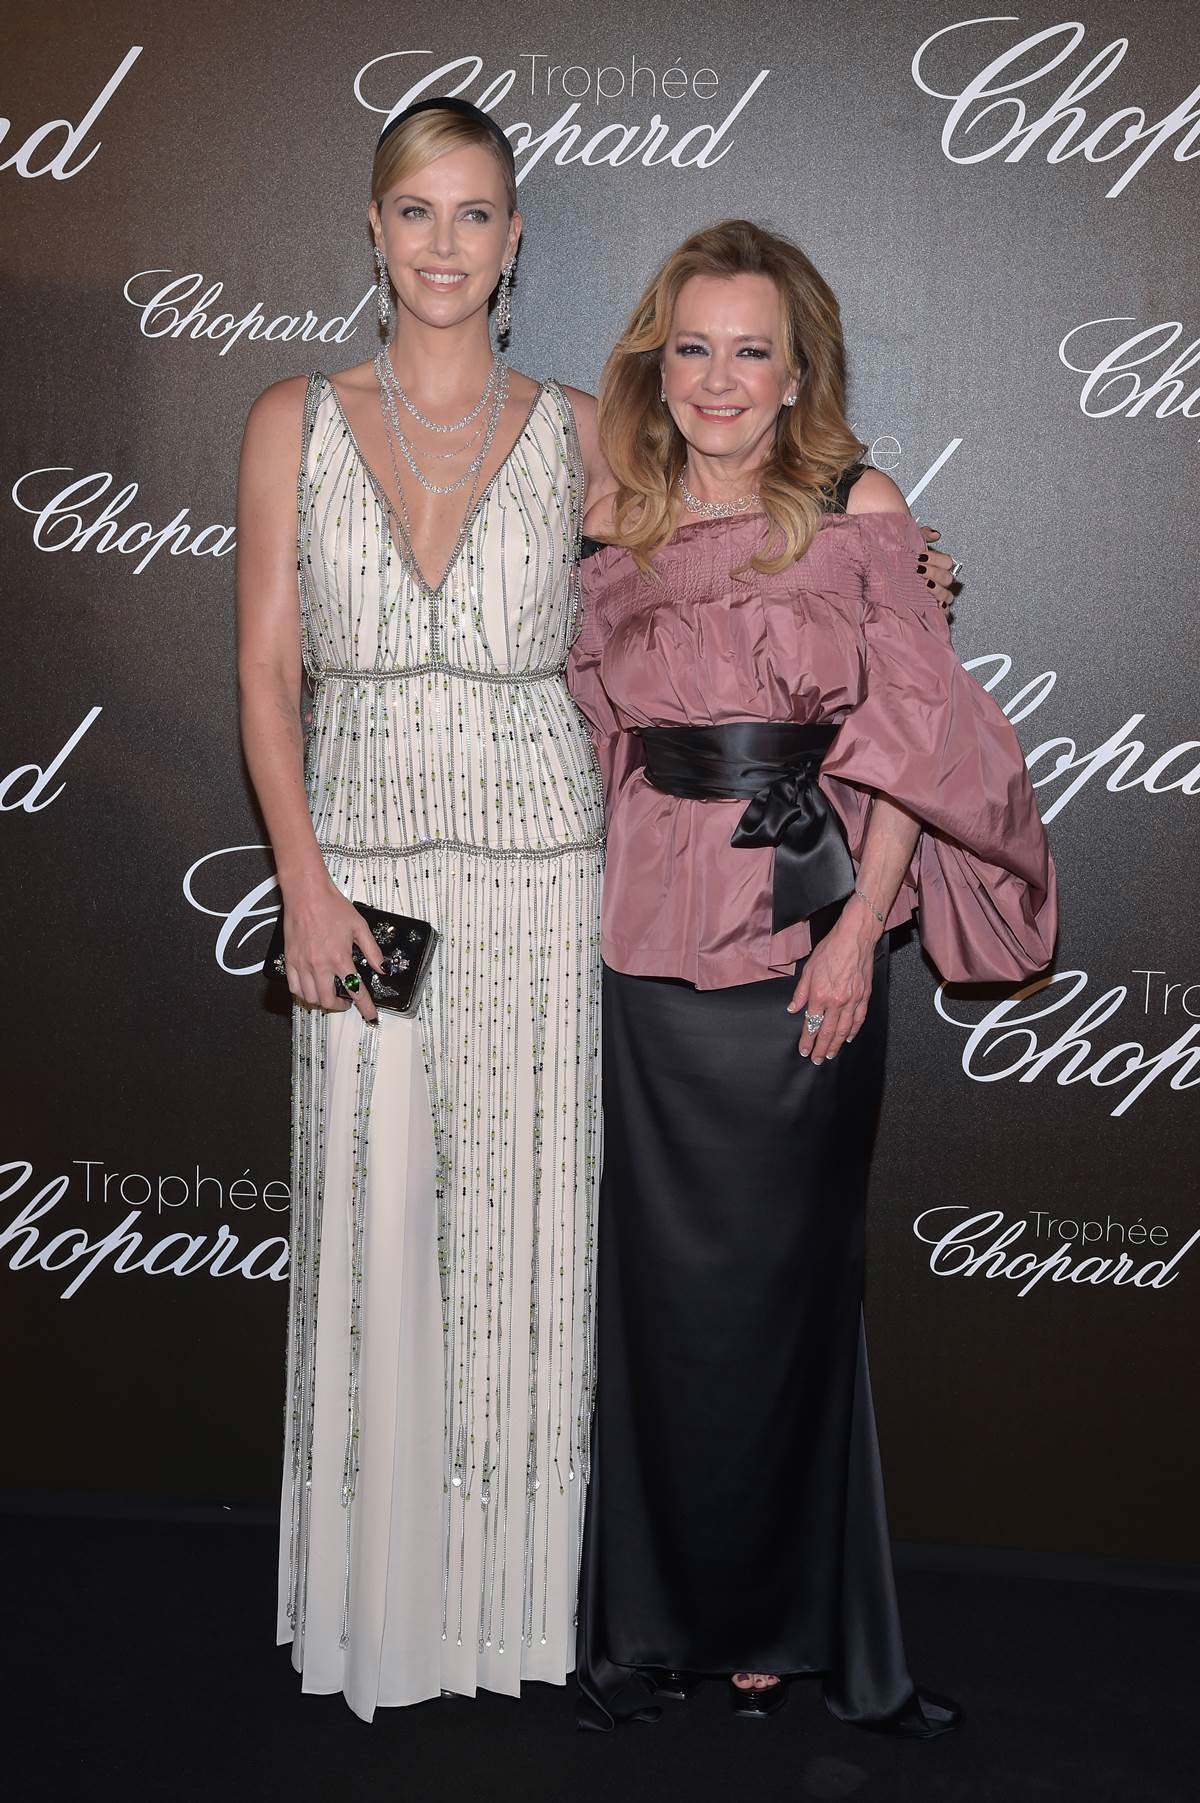 Cannes 2017 - Day 6 - Trophee Chopard - Chopard Co-President & Creative Director Caroline Scheufele and Charlize Theron